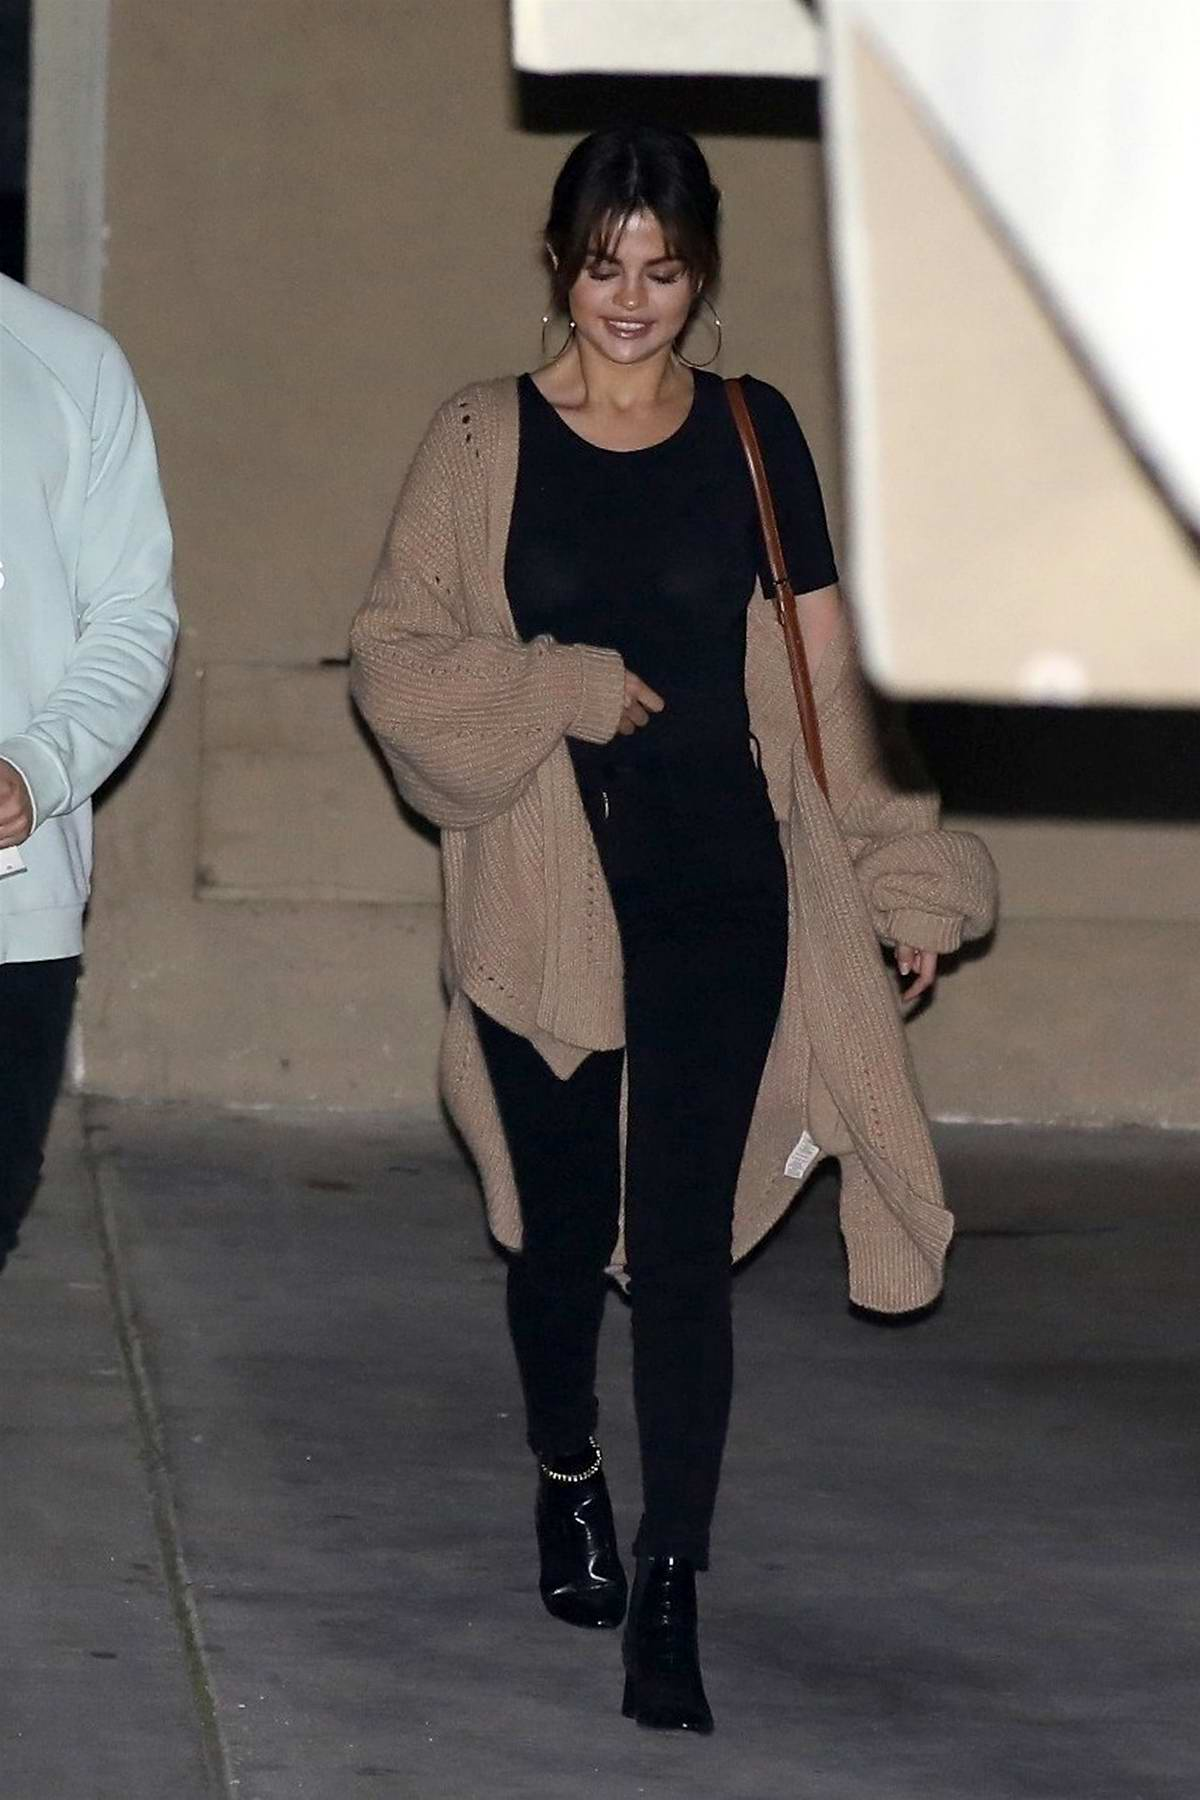 Selena Gomez spotted in a brown knit cardigan over a black top and jeans as she leaves church service in Los Angeles